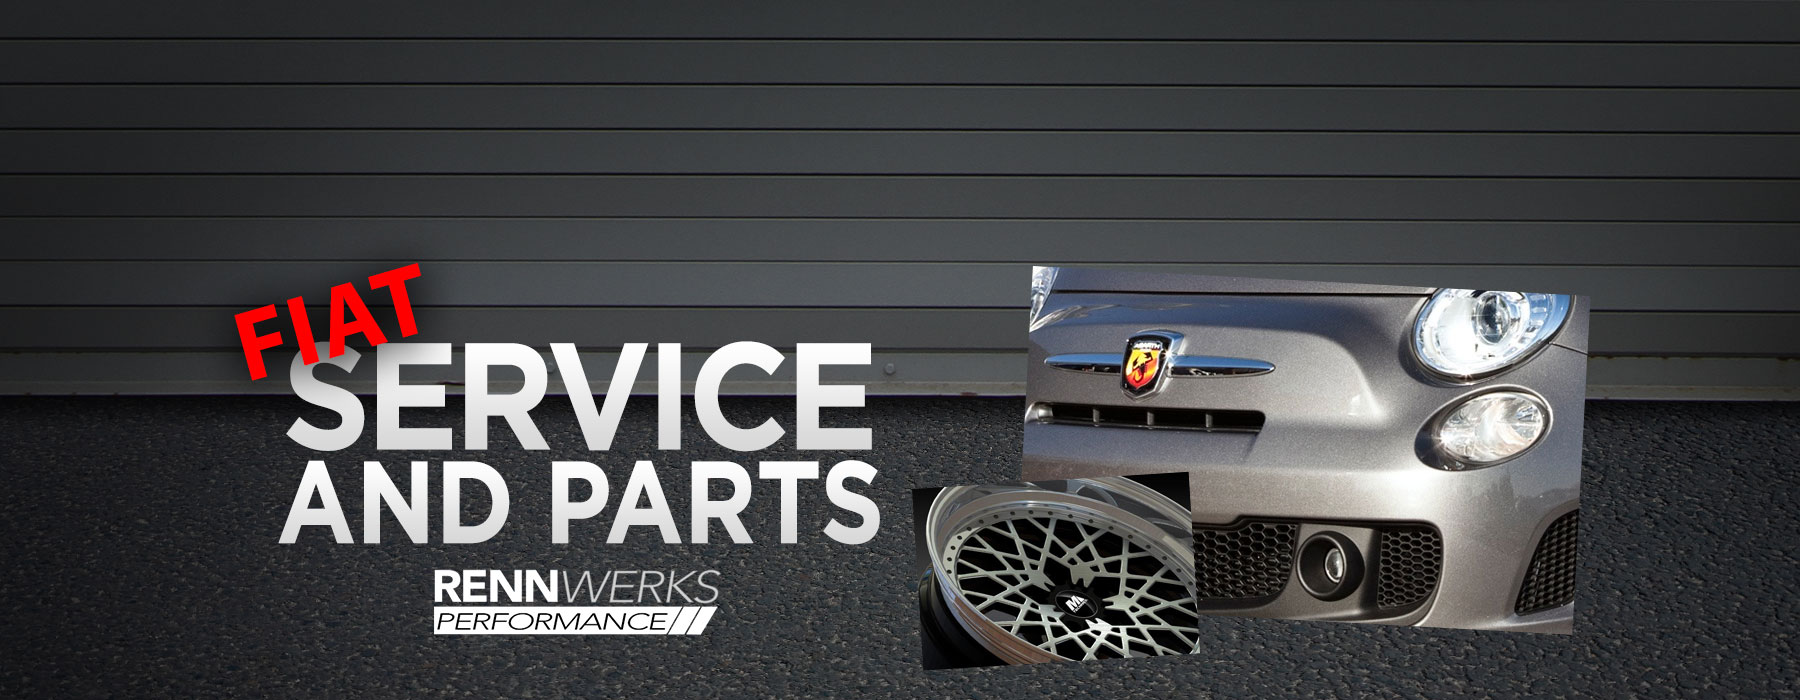 Fiat Repair, Service, and Performance - Sprint Motorsports - Expert